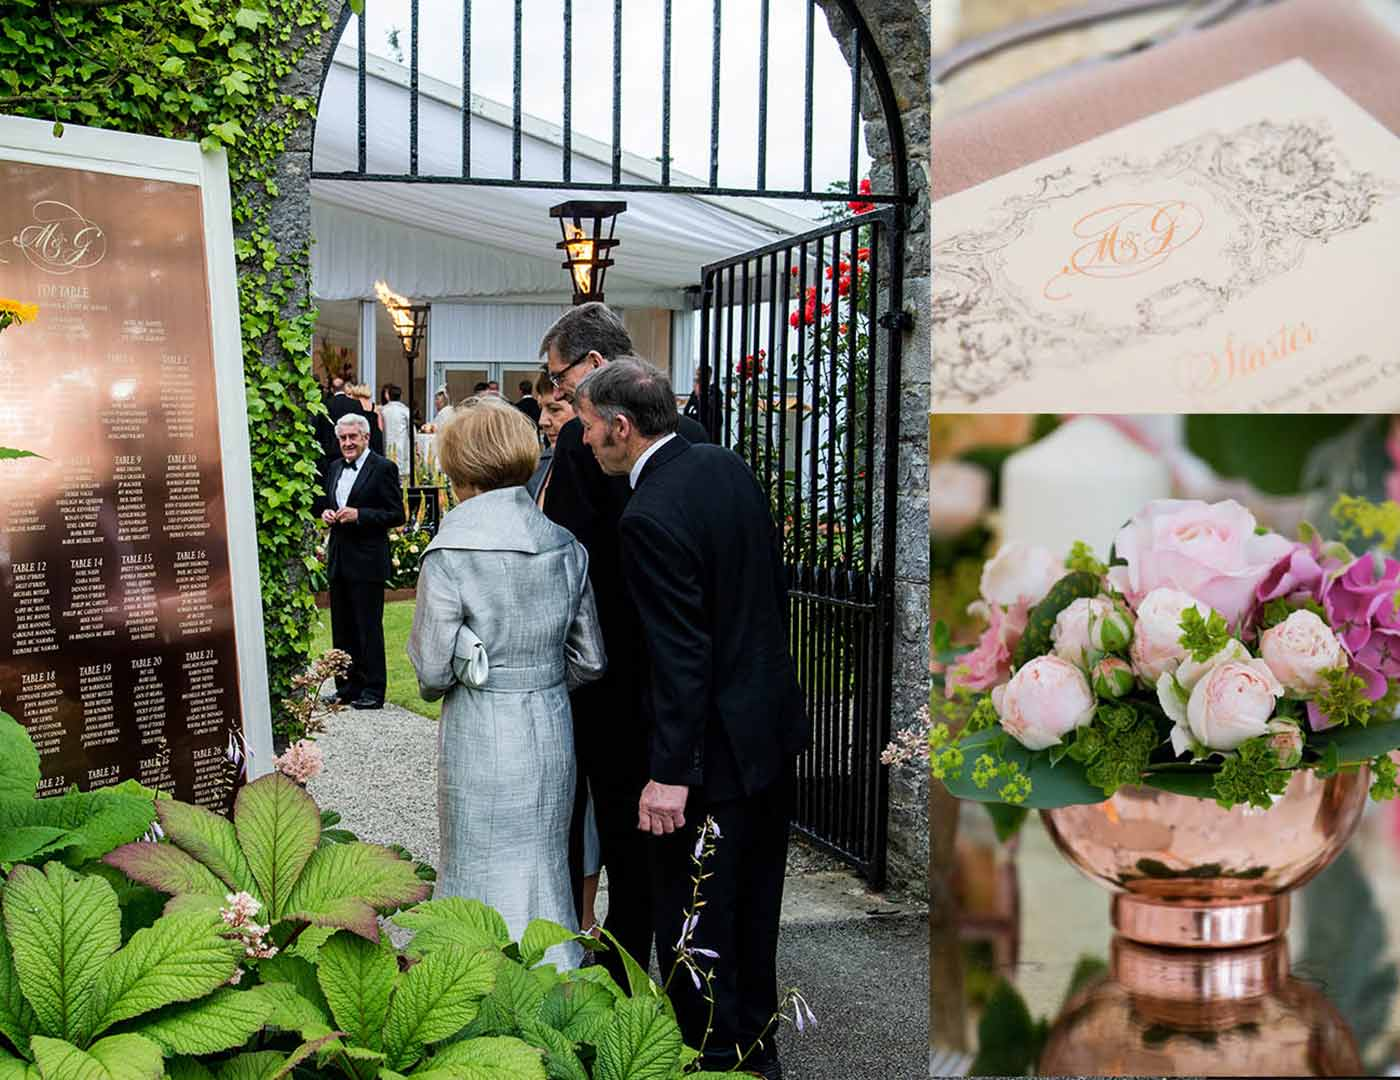 Destination Weddings Ireland, Adare Manor, Olivia Buckley International, Wedding planners in Ireland, Event Planners in Ireland